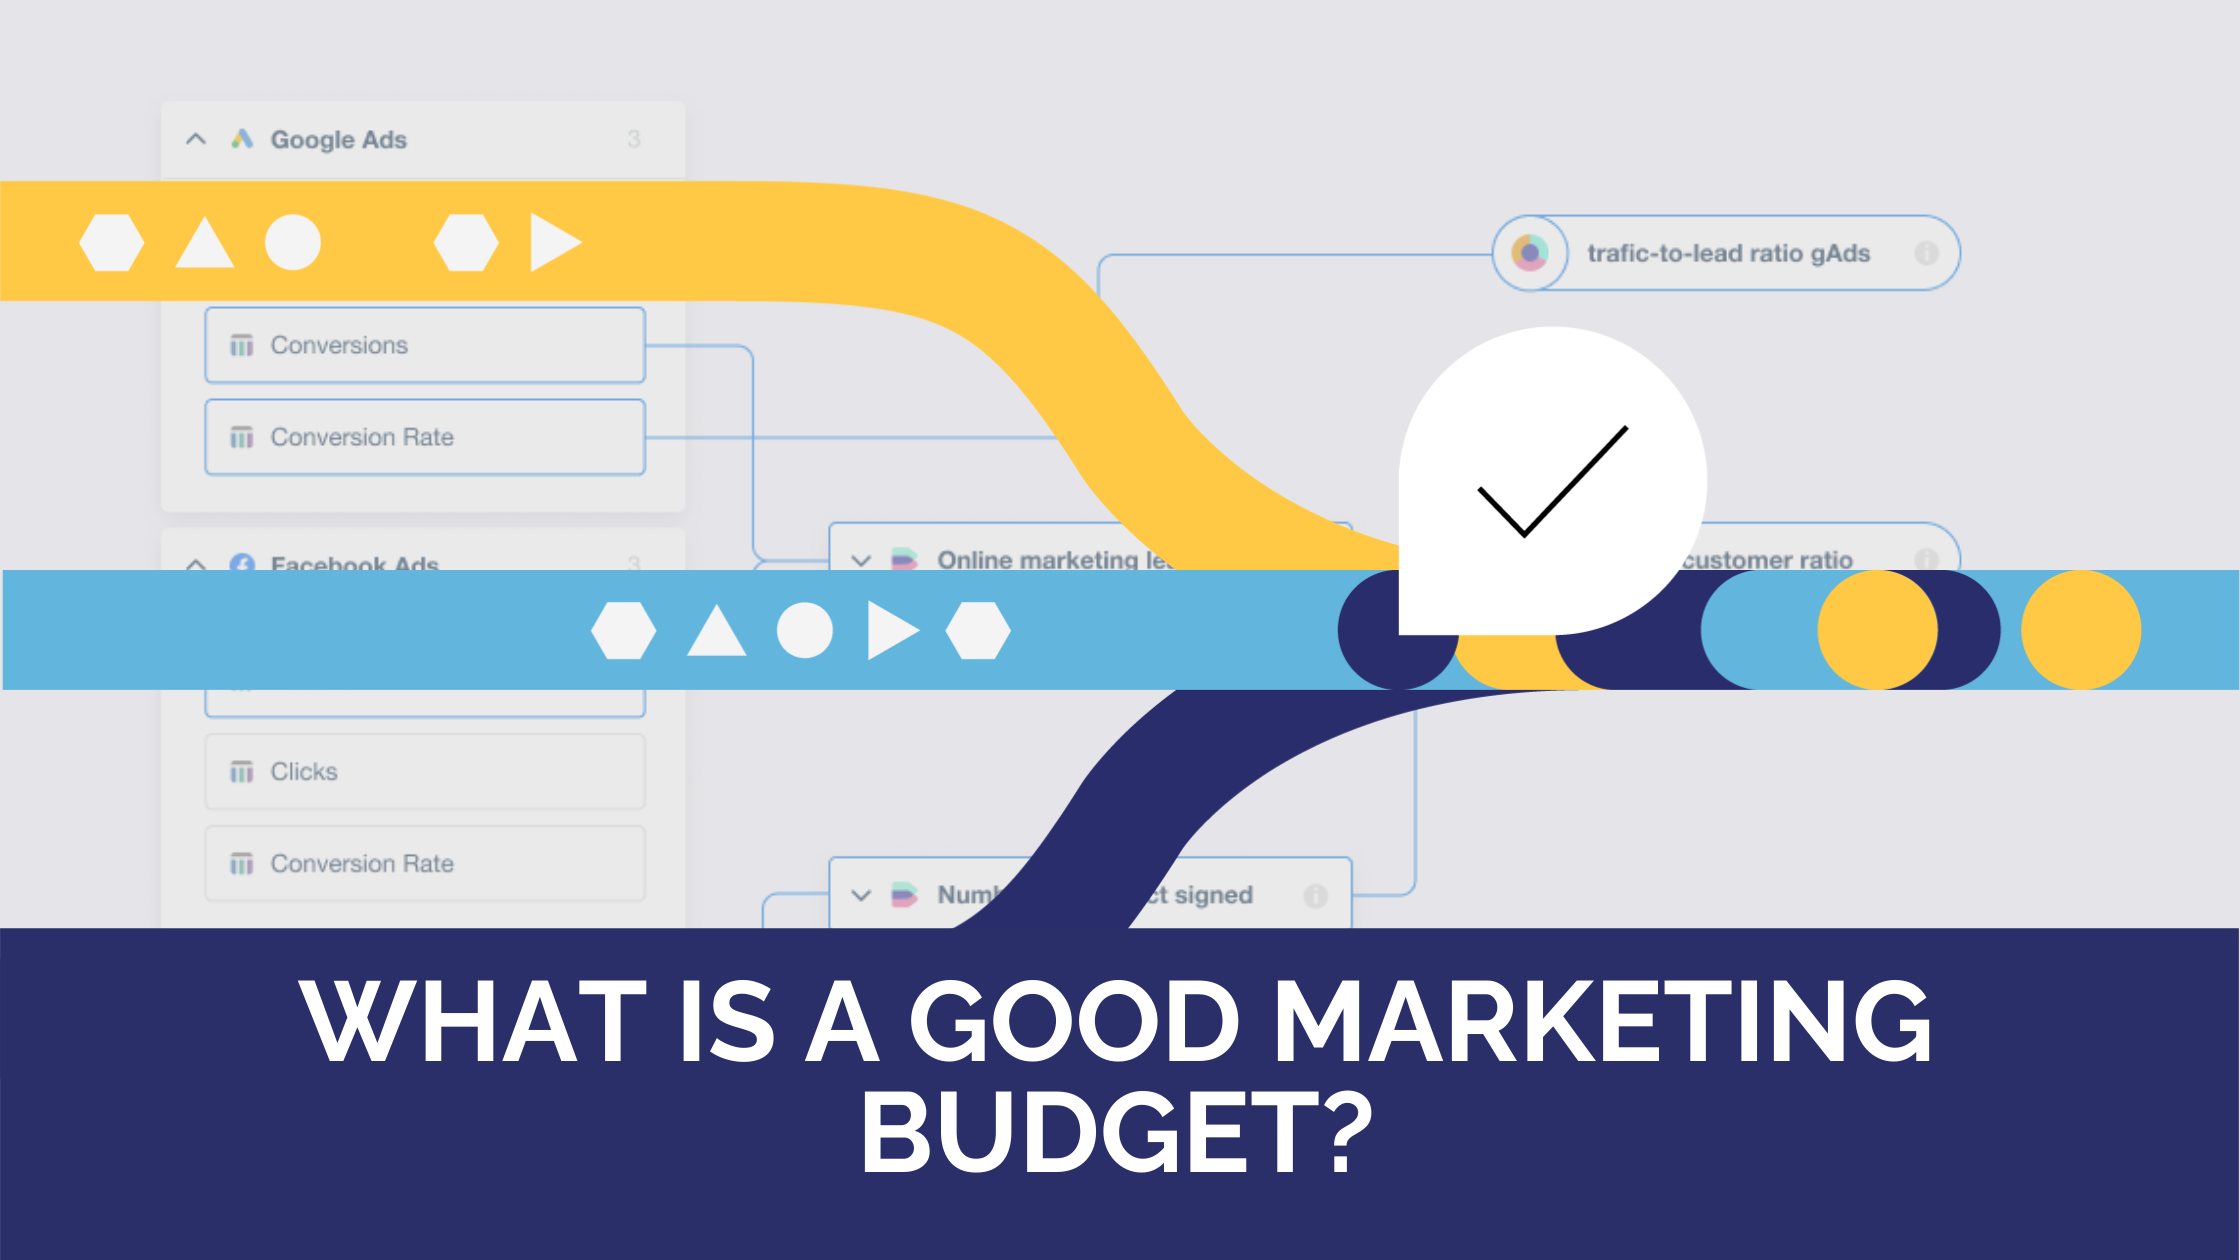 What is a good marketing budget?